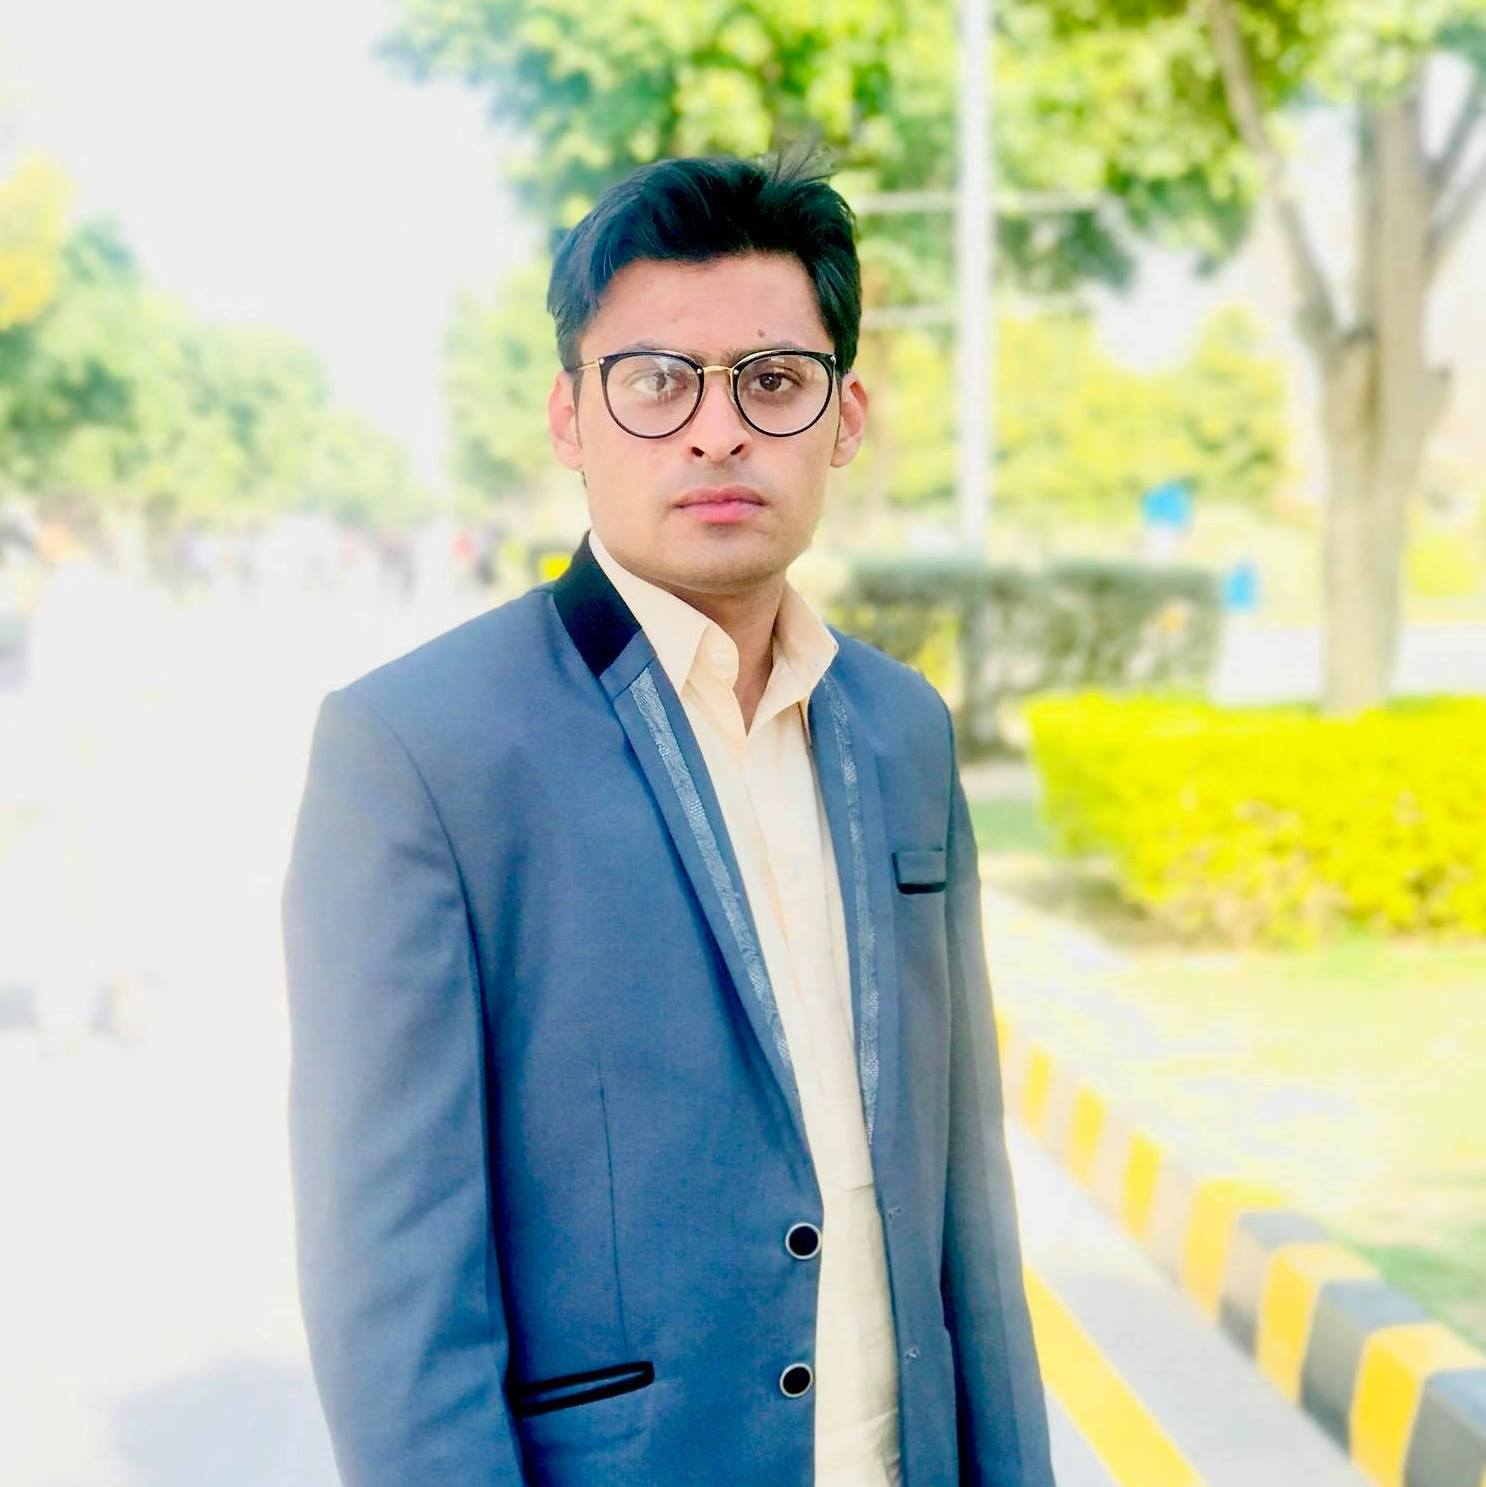 Muhmmad Azam Accounting, Audit, Business Analysis, Finance, Human Resources, Inventory Management, Management, Risk Management, Tax, Corporate Transactions